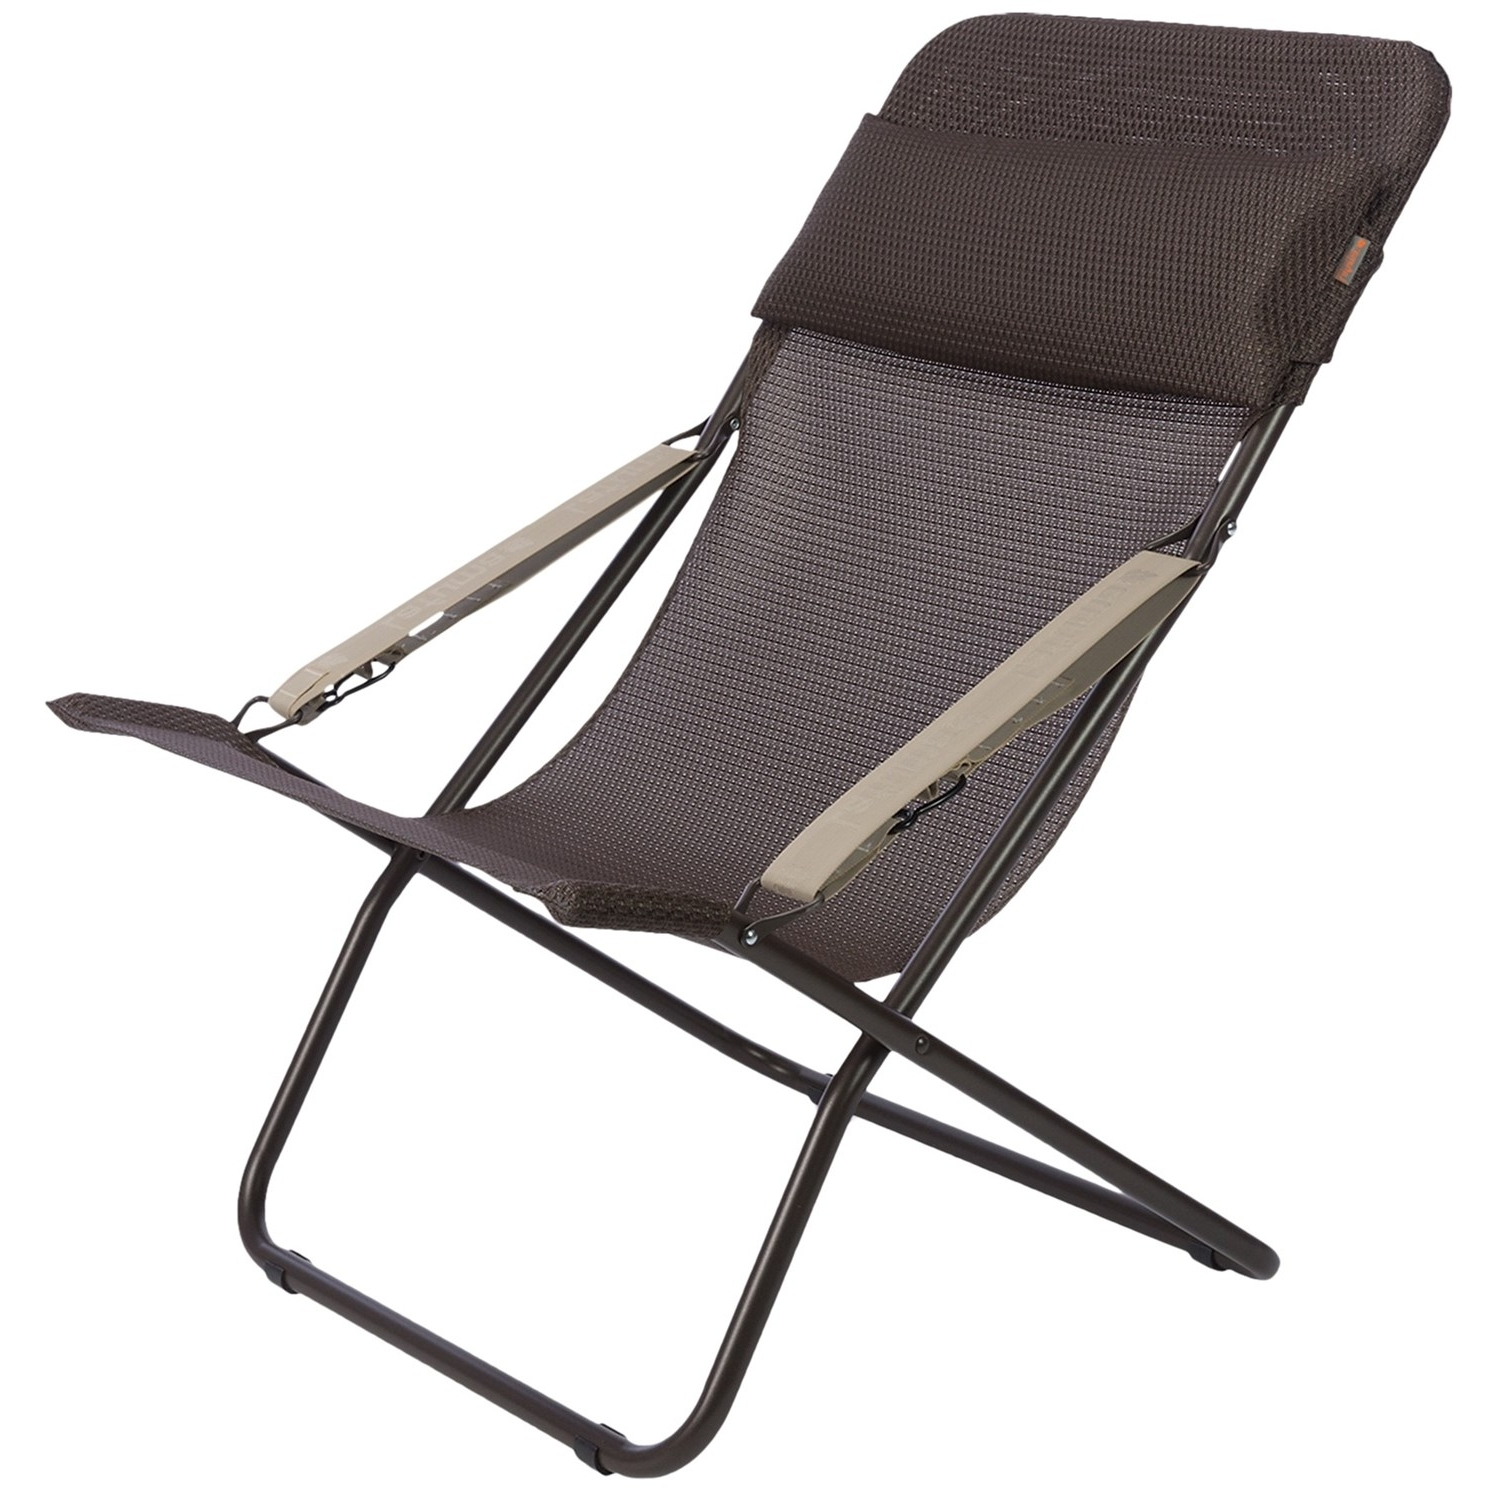 Lounge Chair : Folding Lawn Chairs Sturdy Outdoor Chaise Lounge Intended For Best And Newest Heavy Duty Outdoor Chaise Lounge Chairs (View 7 of 15)